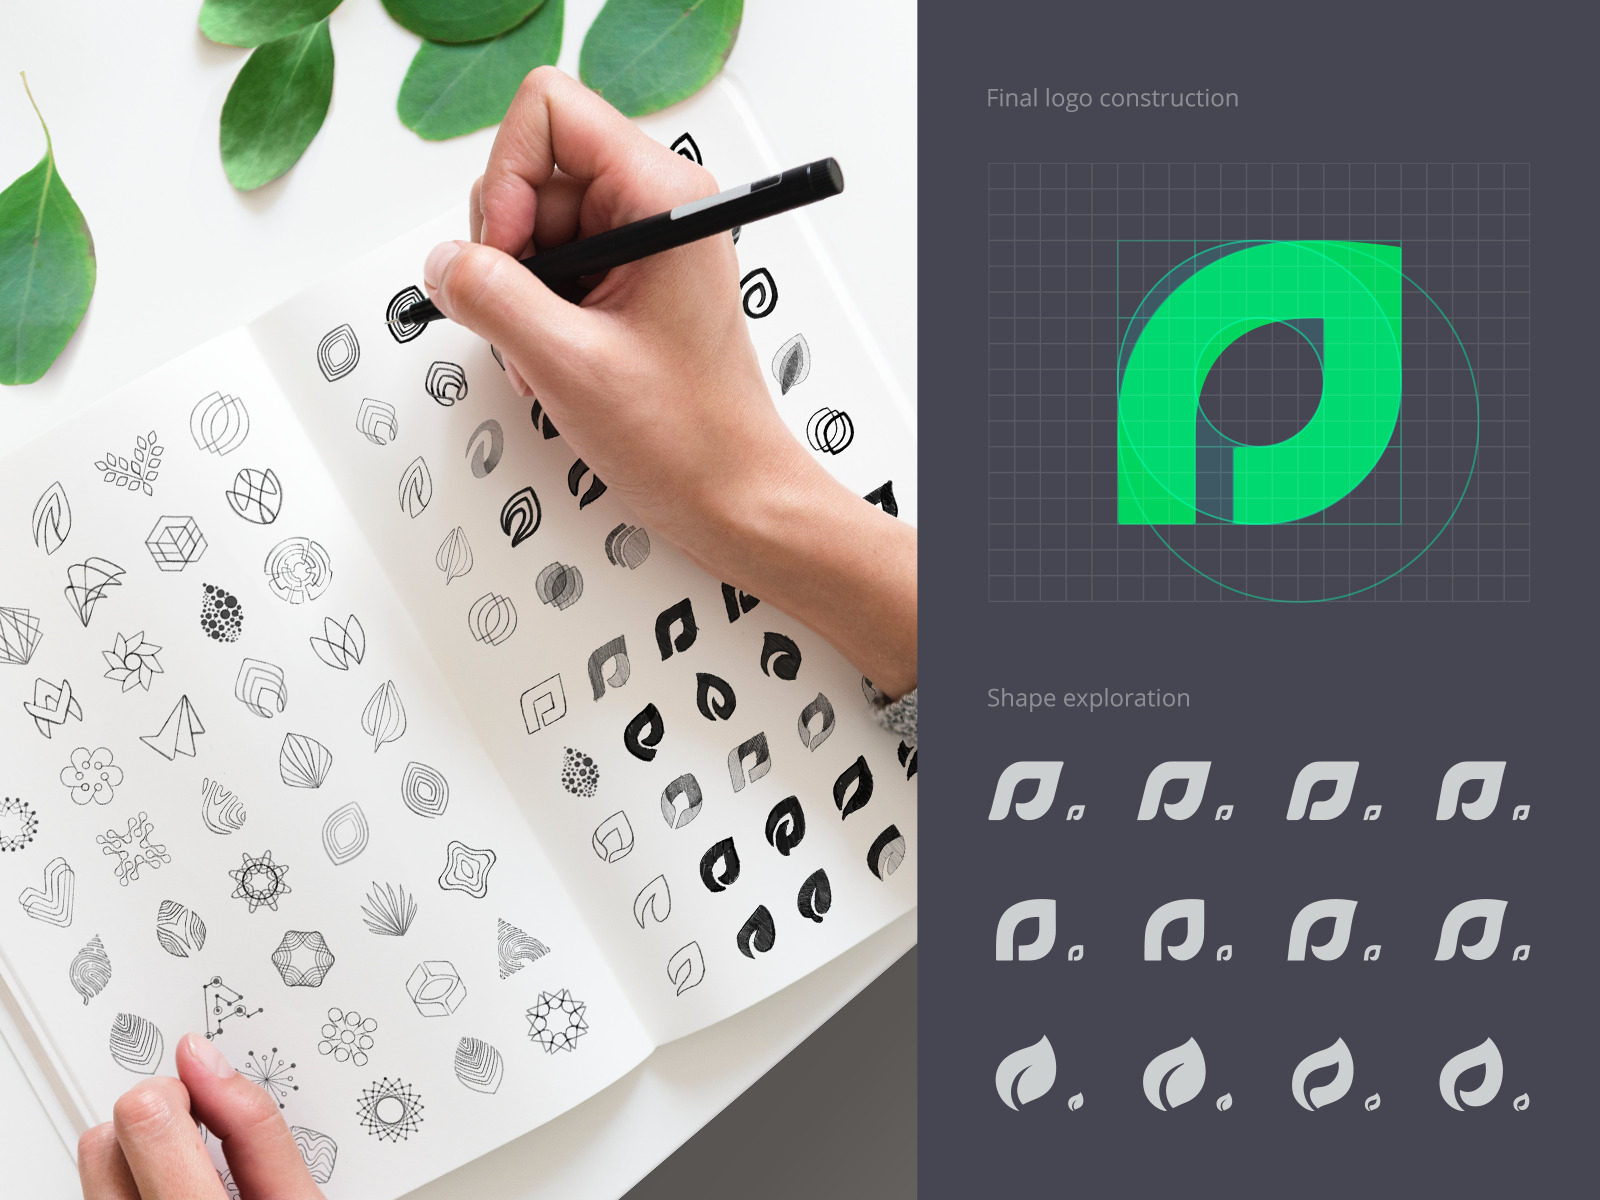 assetly logo sketches